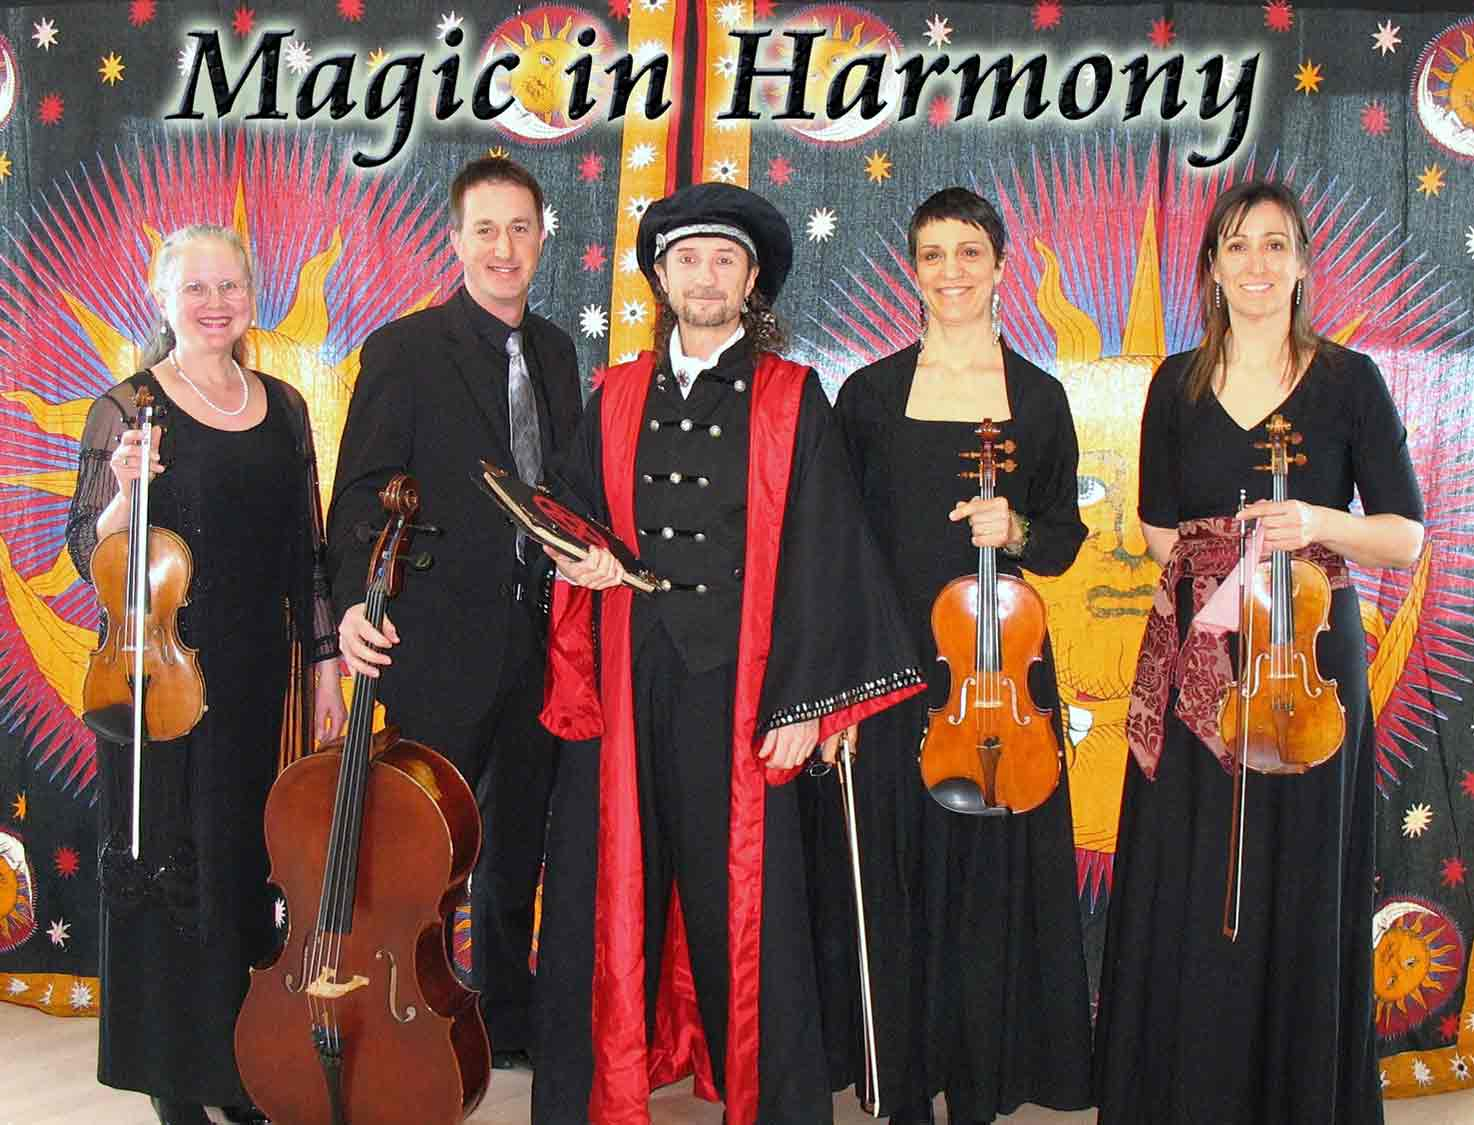 l'illusionniste Loran - Biographie - Spectacle Magic in Harmony avec les musiciens de I Musici